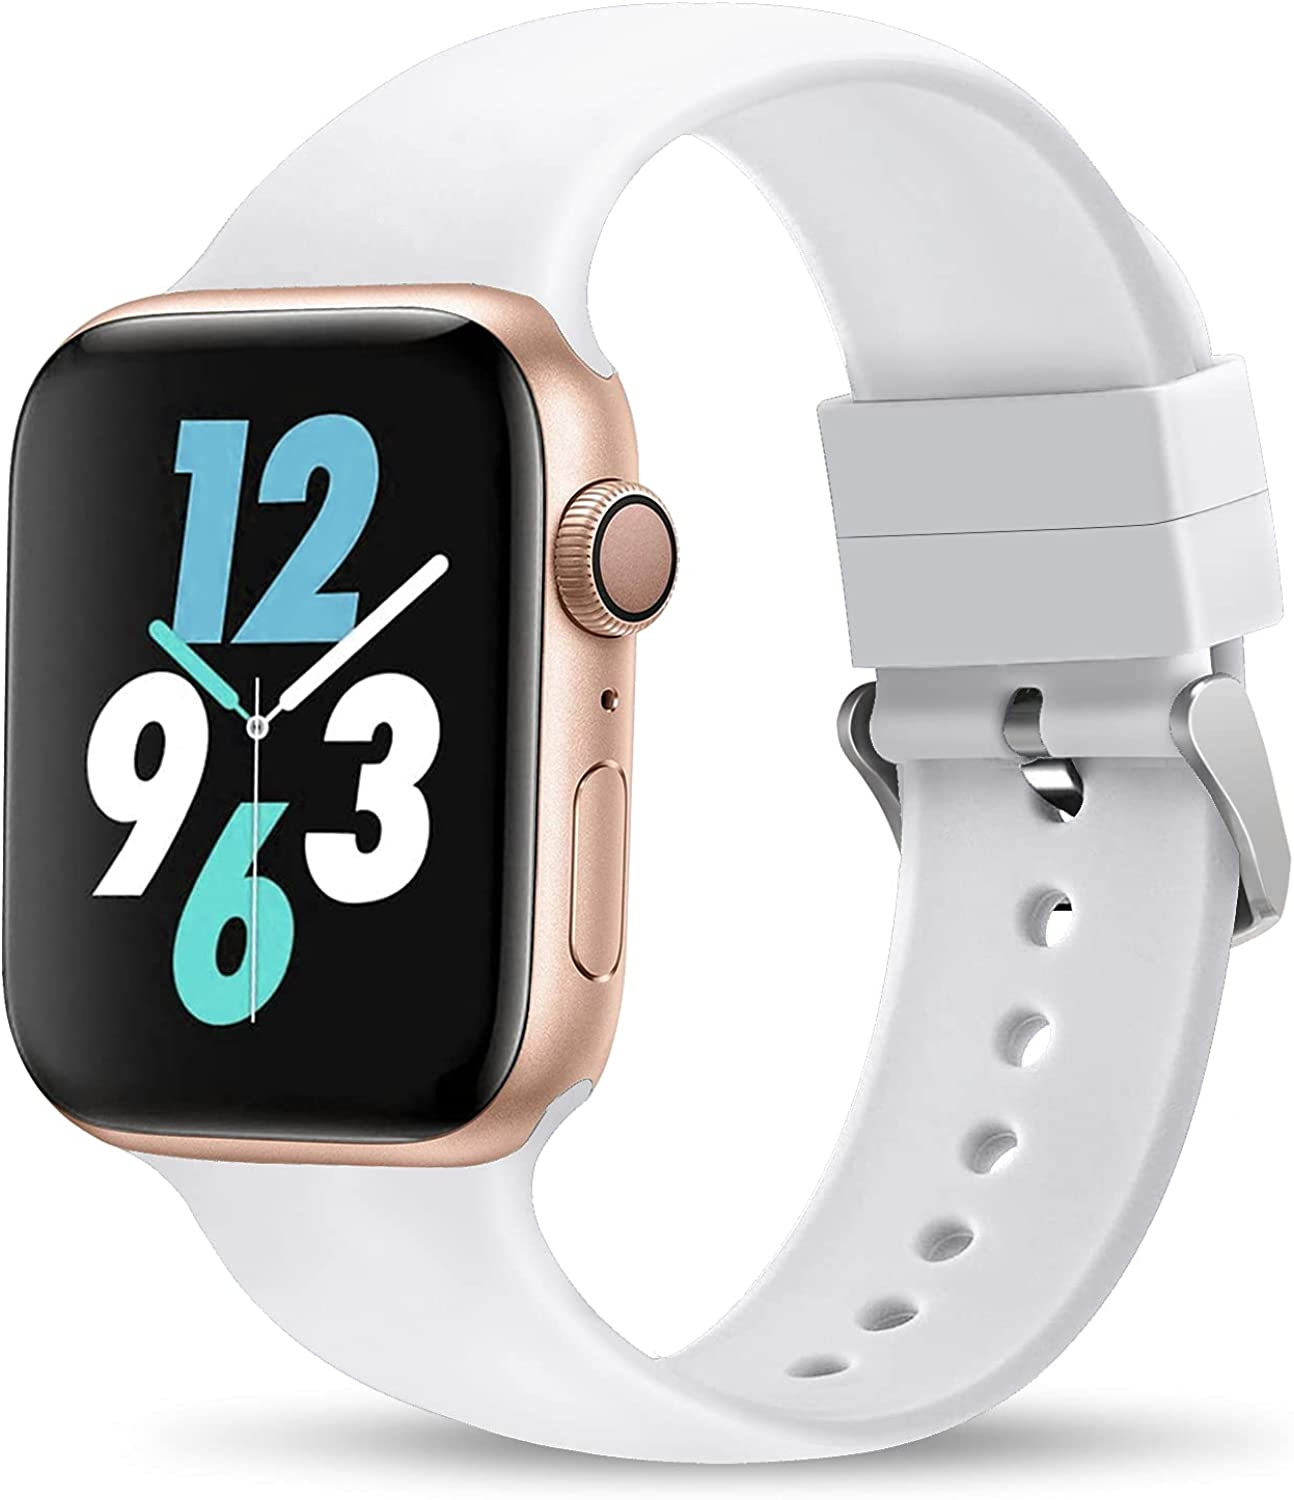 THWALK Sport Band Compatible with Apple Watch 38/40mm 42/44mm for Men/Women Waterproof Bands Replacement Strap Accessories for iWatch Apple Watch SE Series 6/5/4/3/2/1